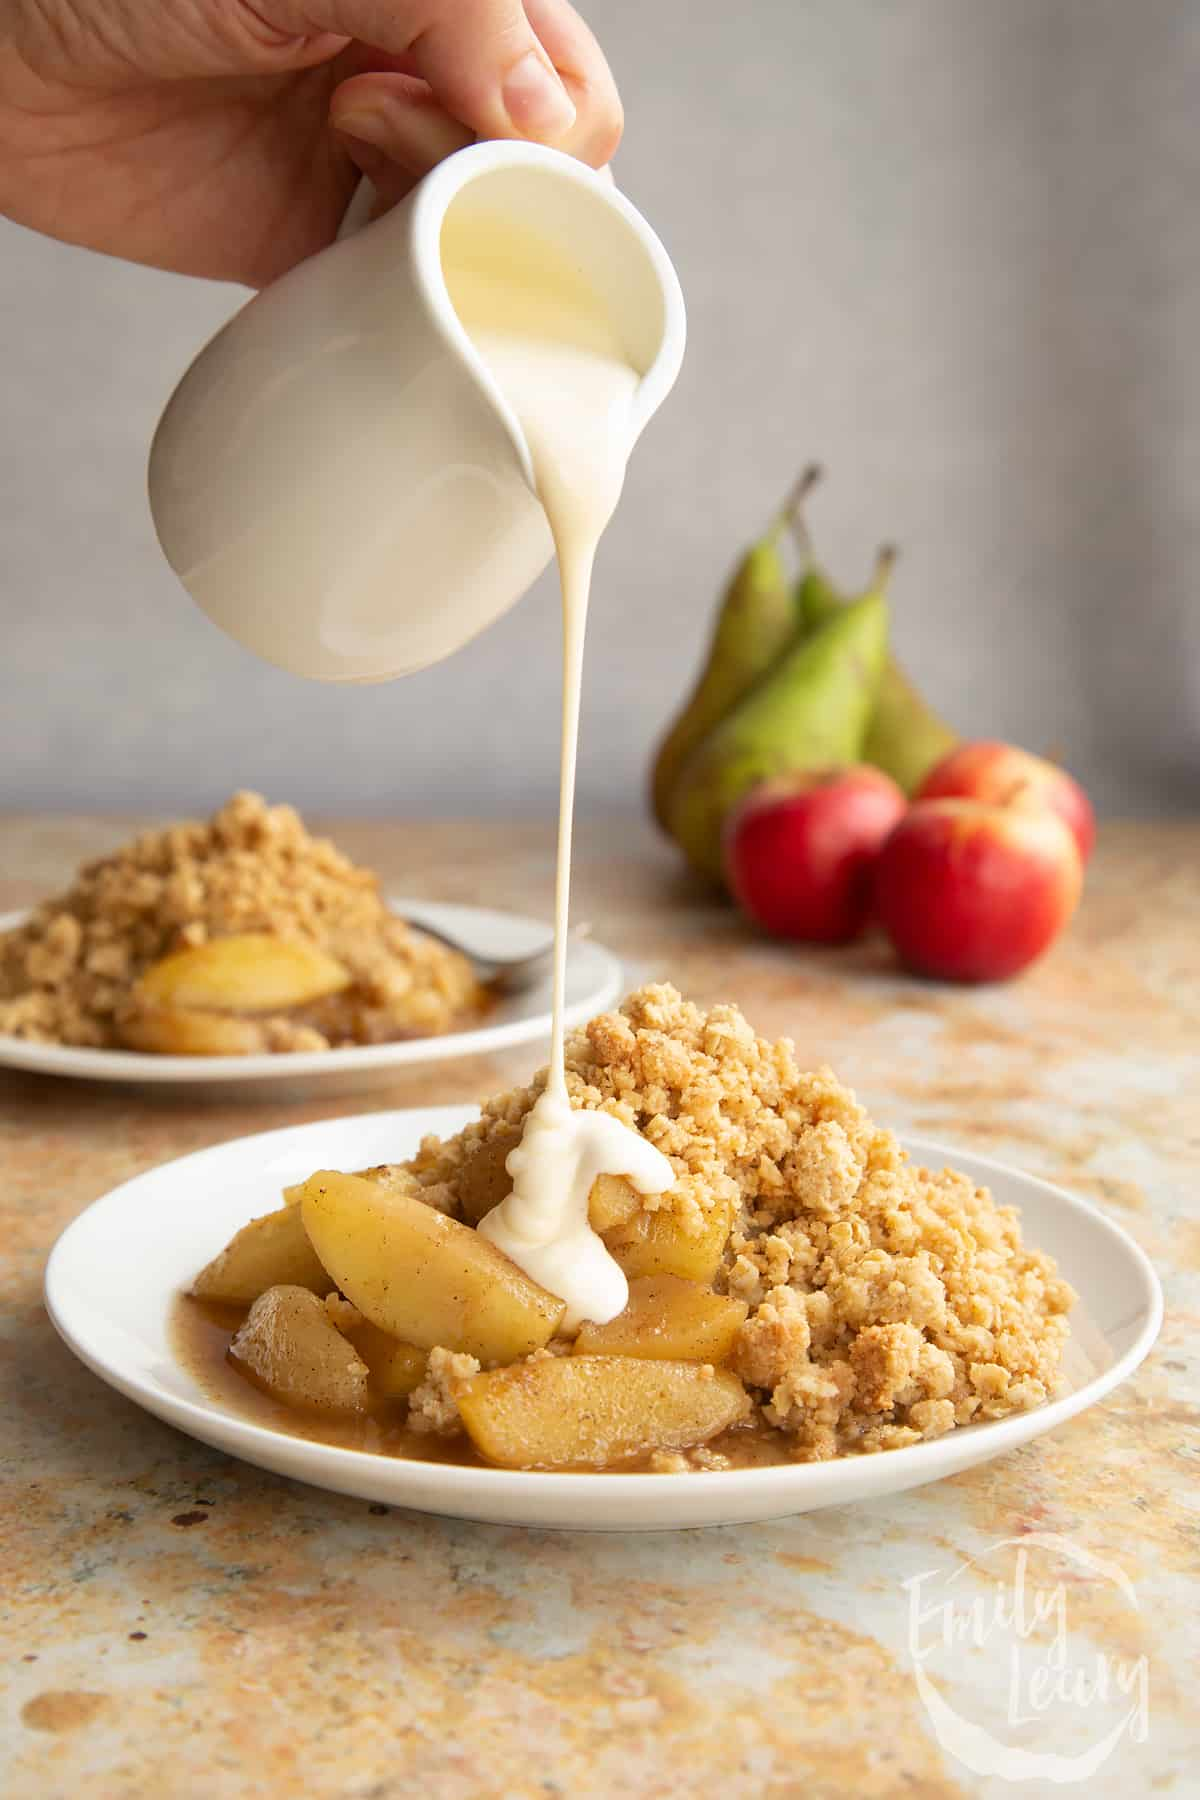 Apple pear crumble served to a small white plate. A hand pours a jug of custard above the plate.